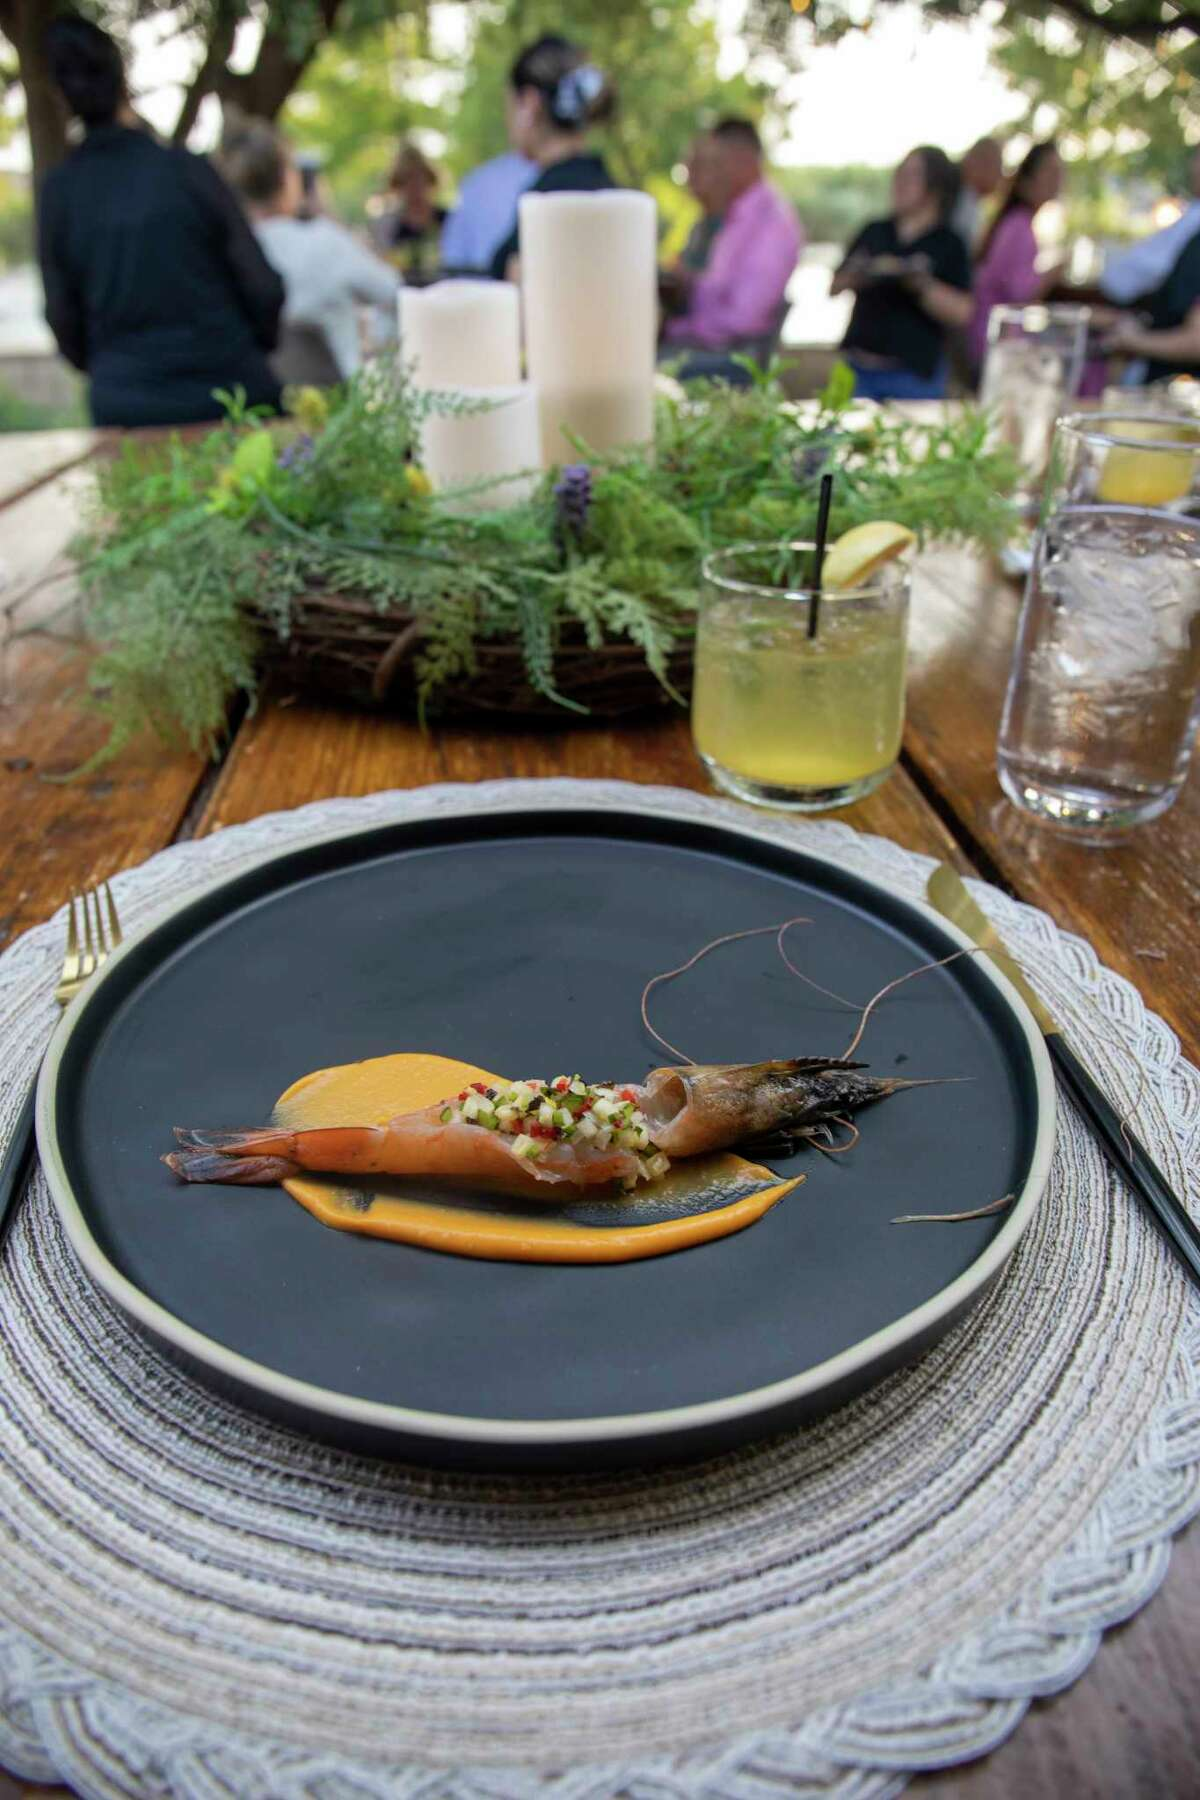 Sweet potato purée, New Caledonia blue prawn, apple, scallion, parsley oil paired with Lilikoi and mint spritzer during Seance's first dinner Monday, July 19, 2021 at Shack in the Back. Jacy Lewis/Reporter-Telegram